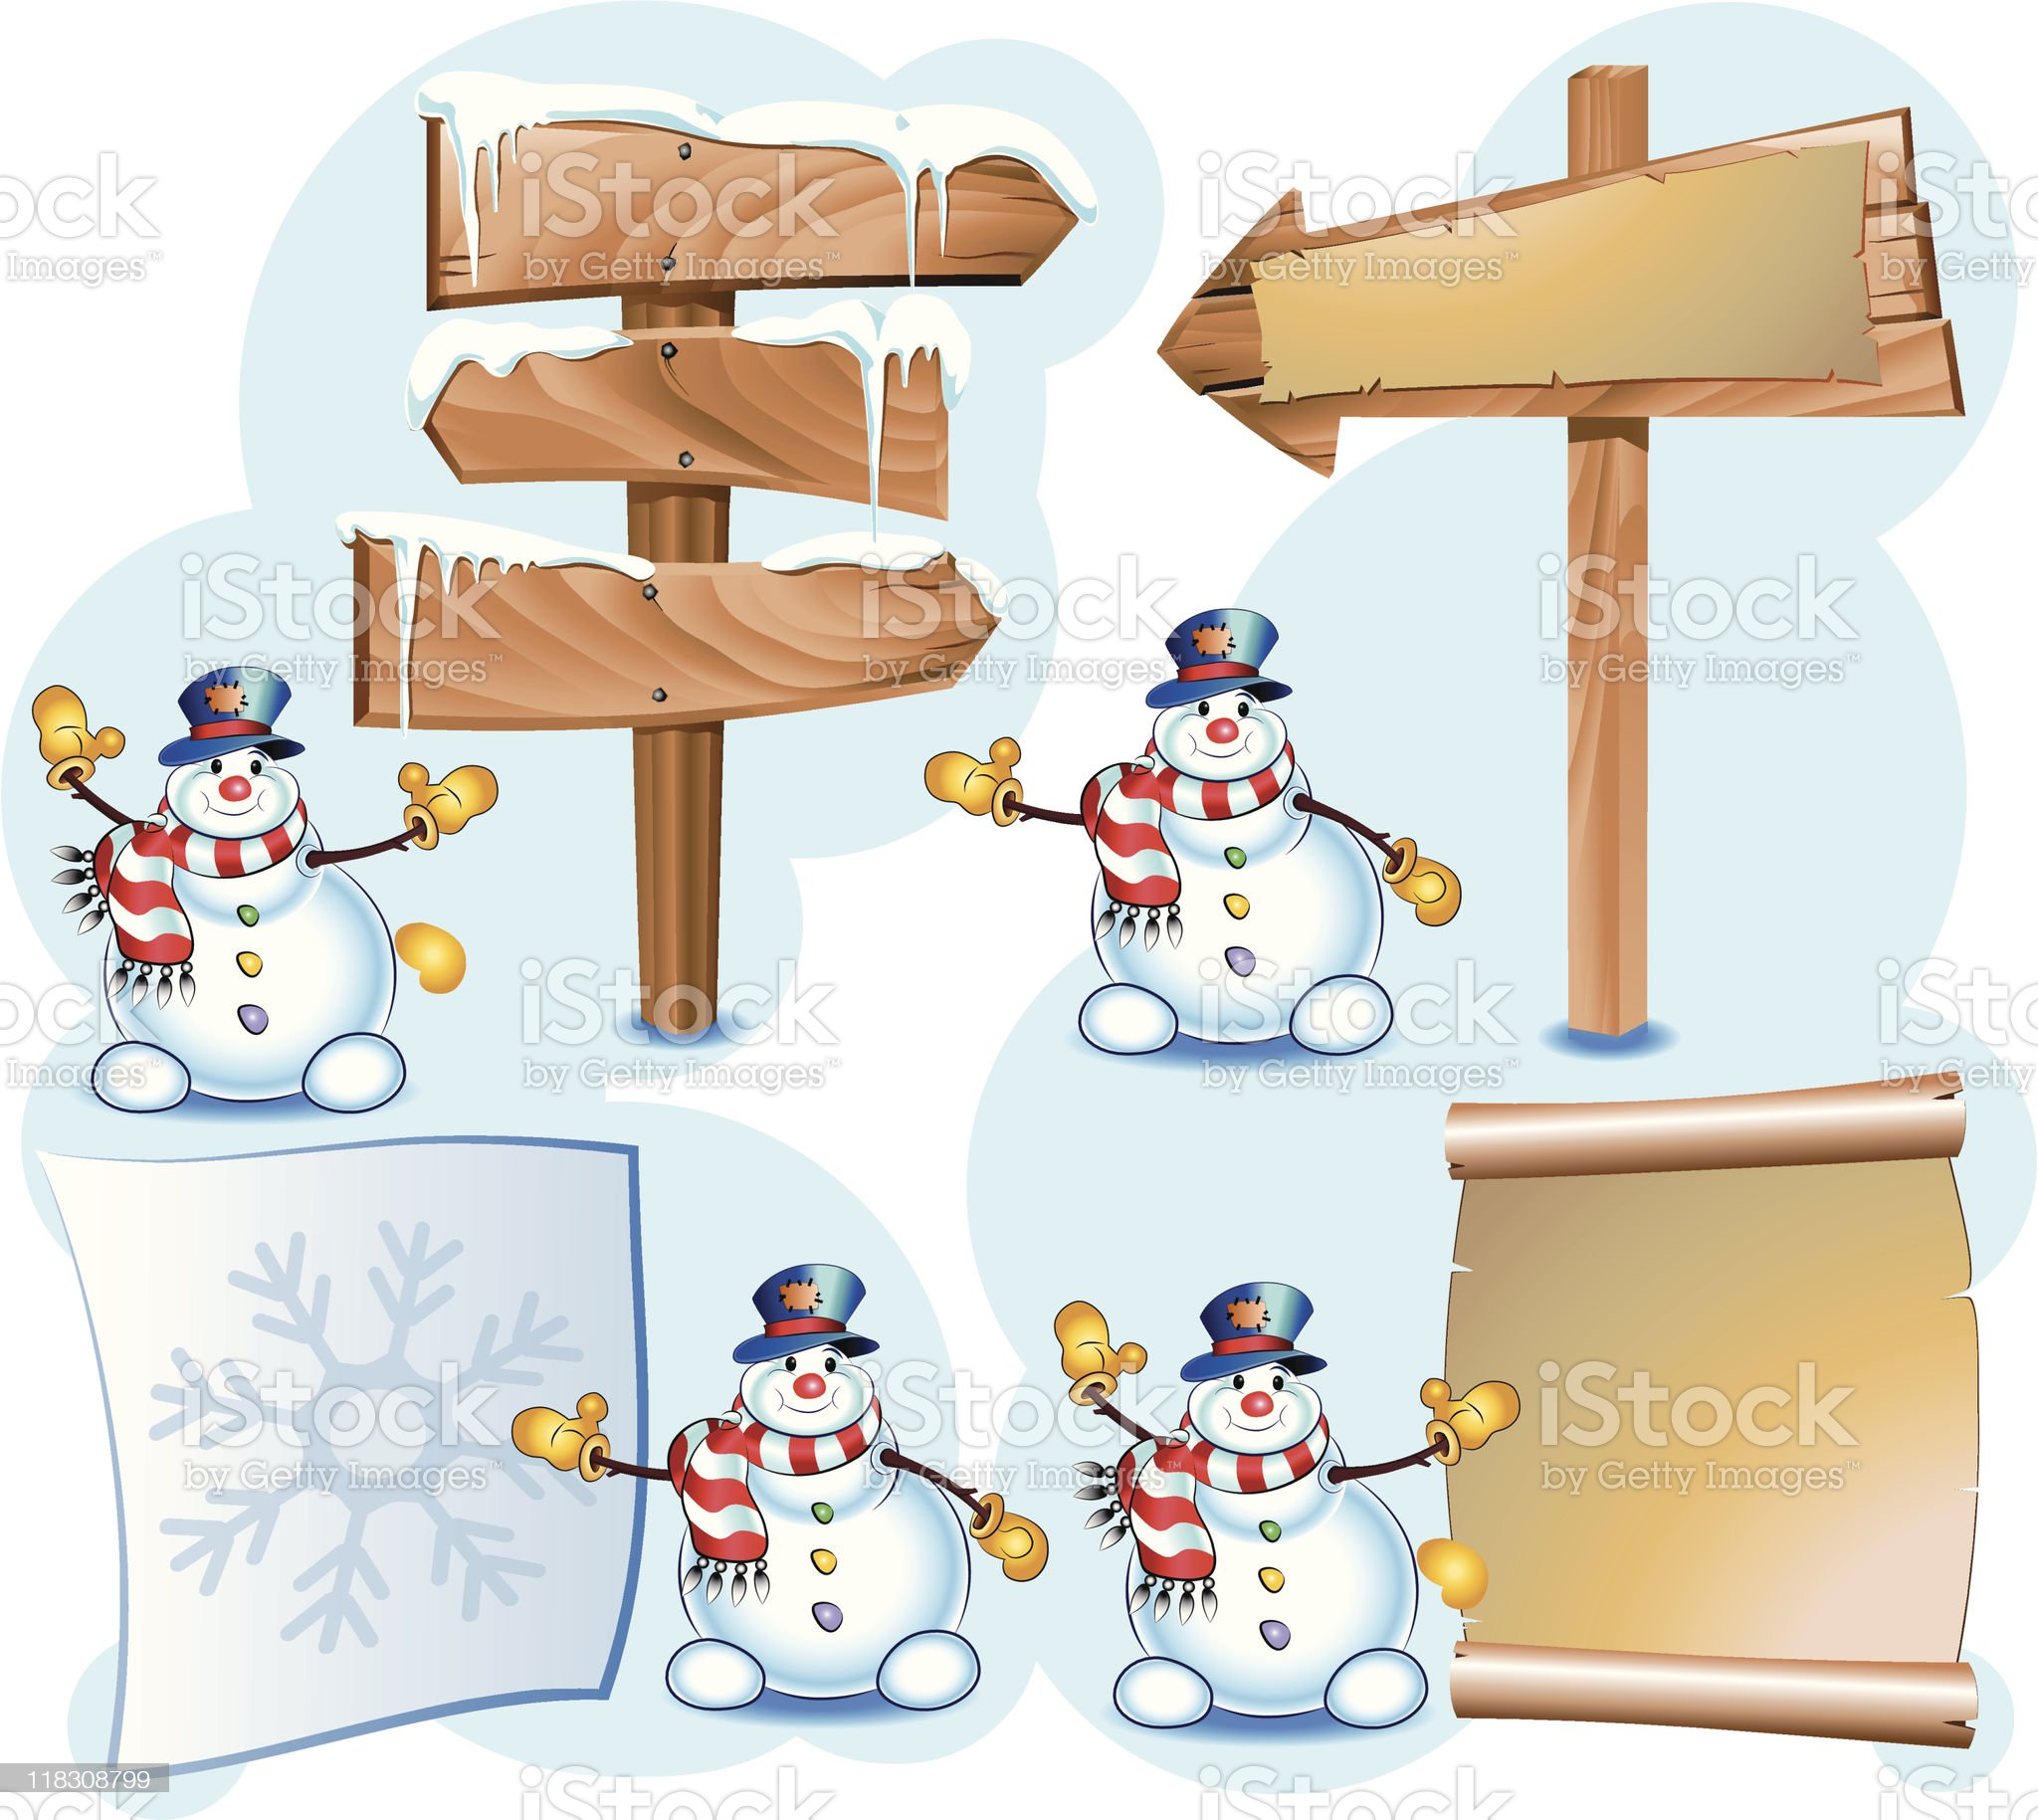 snowman and signpost royalty-free stock vector art